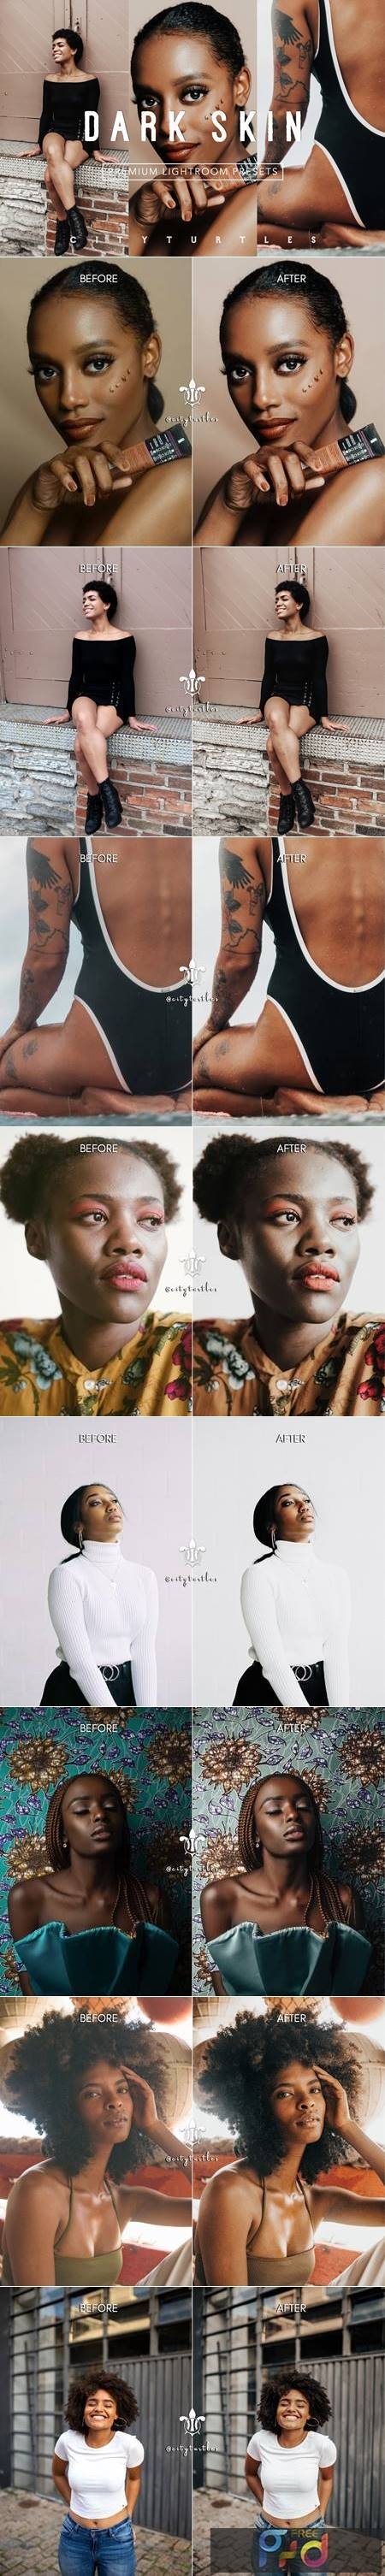 Minimal DARK SKIN Lightroom Presets 5155821 1